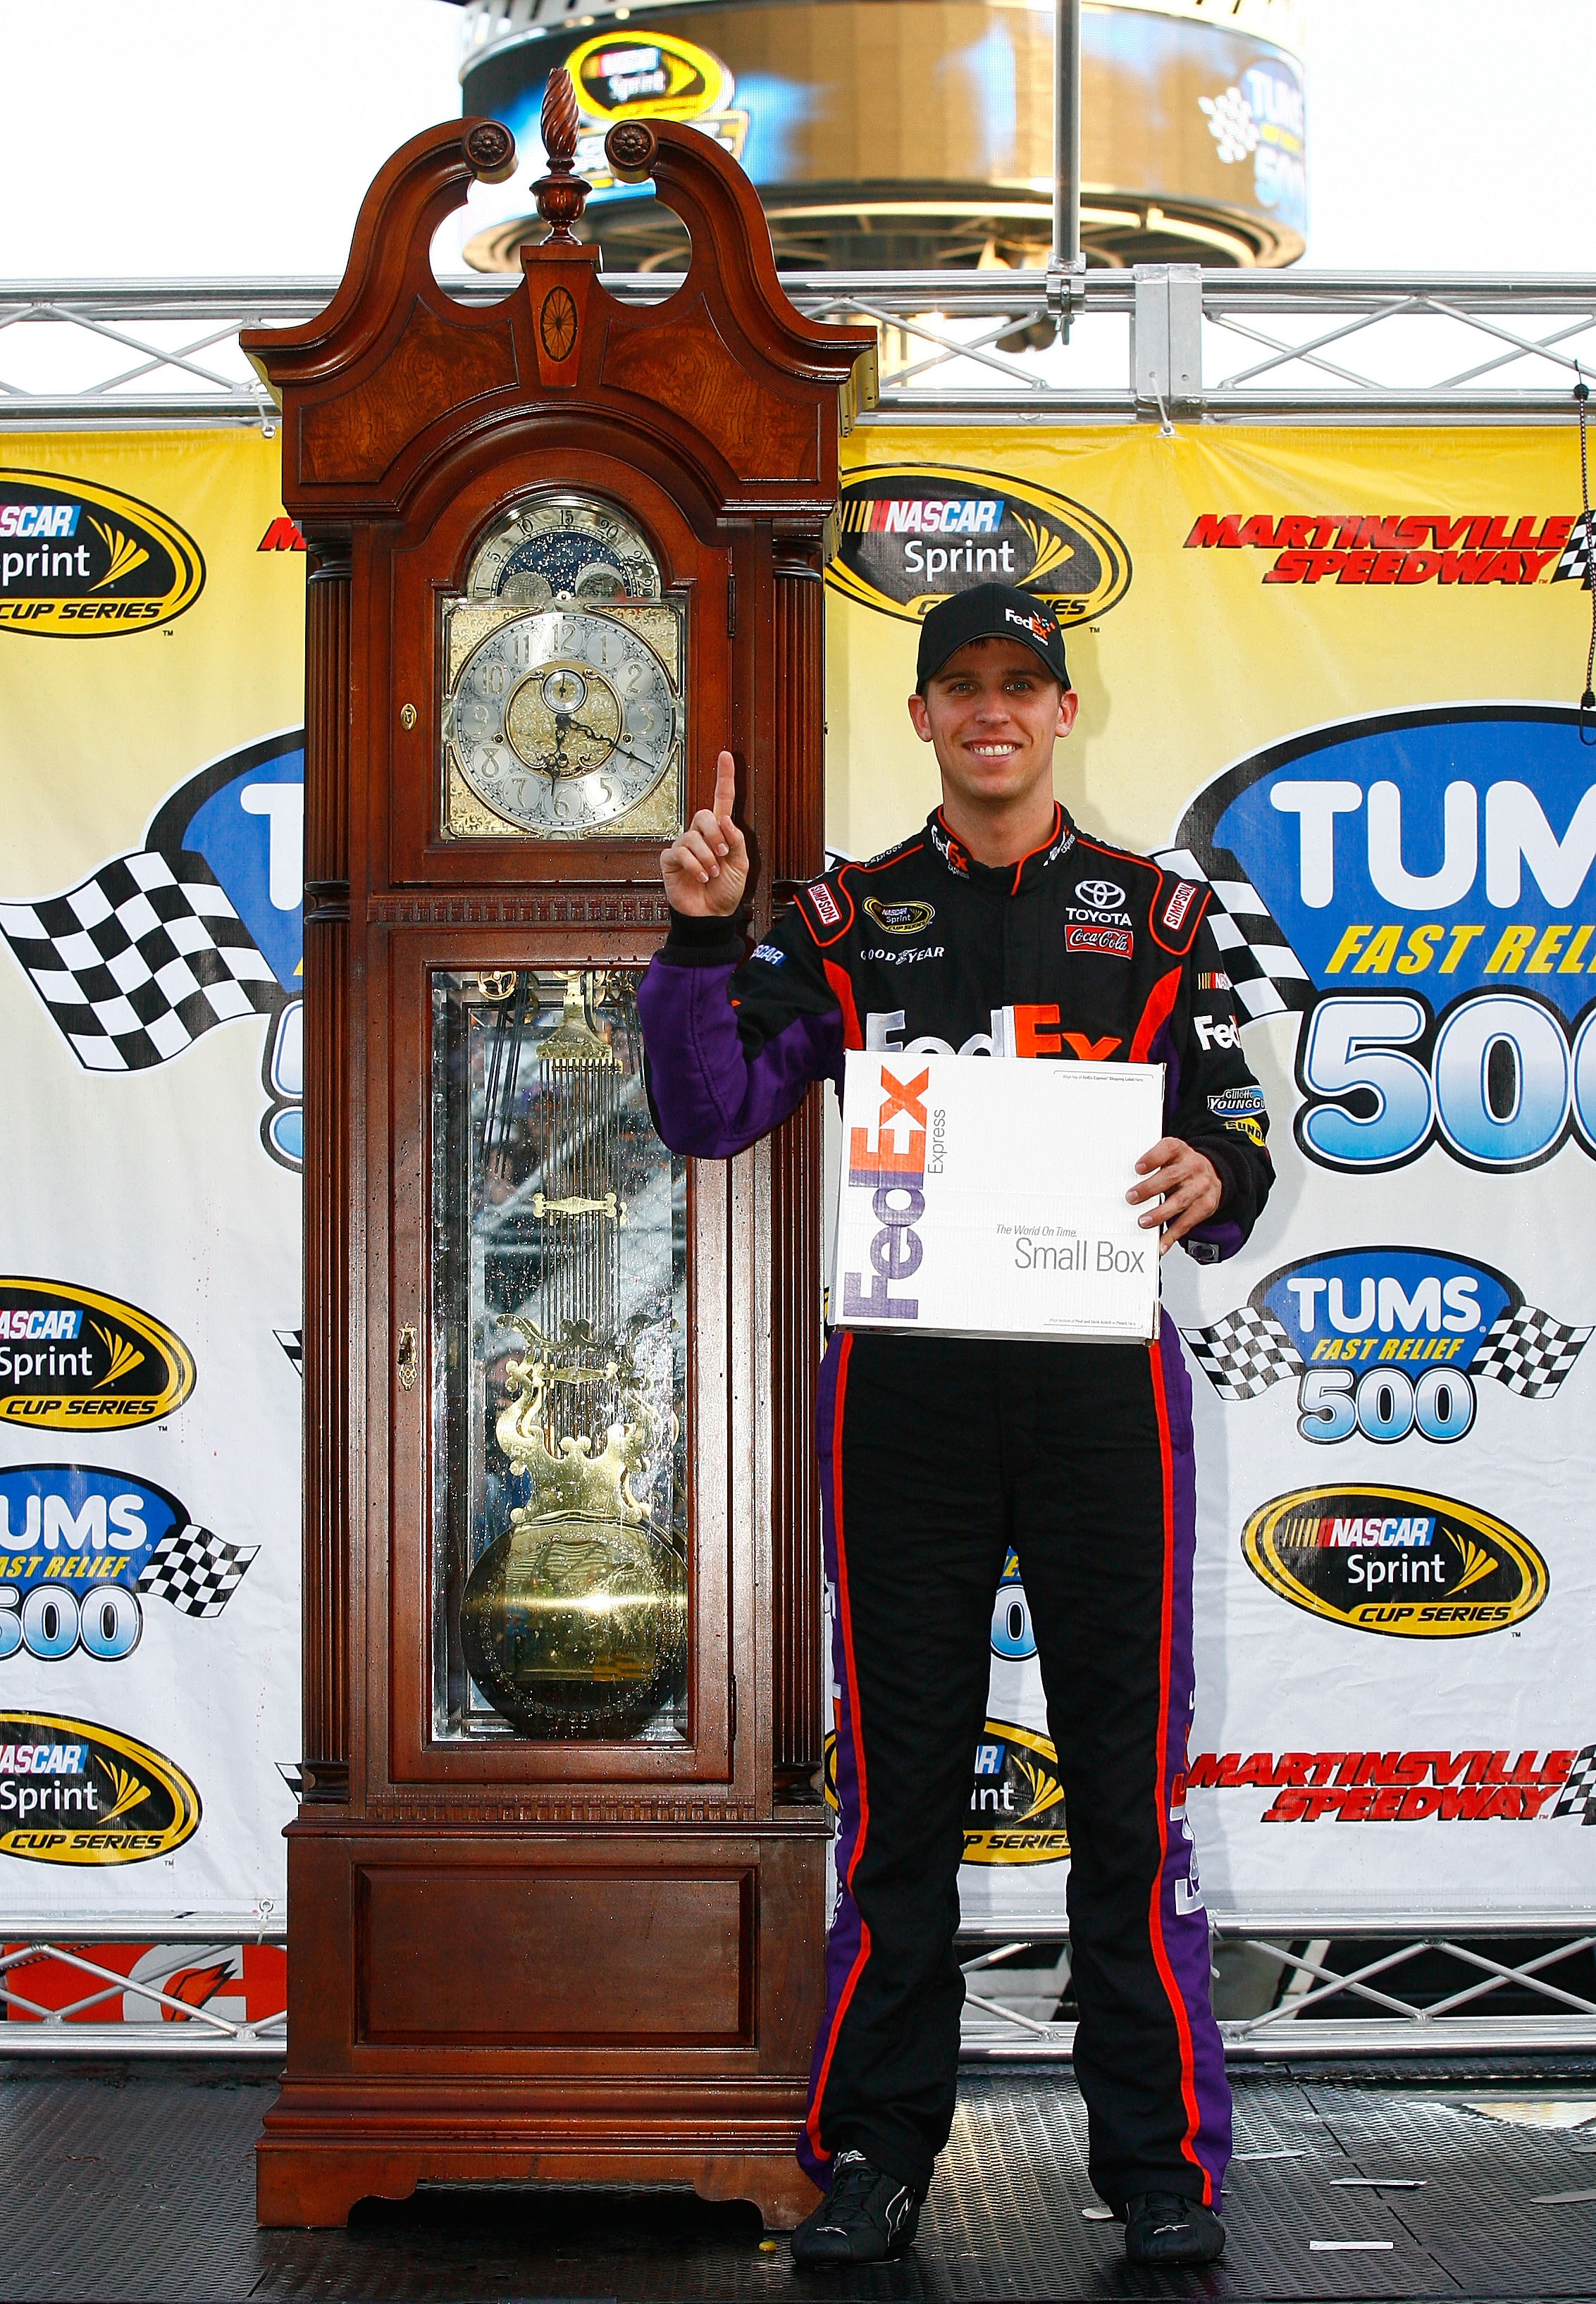 MARTINSVILLE, VA - OCTOBER 24:  Denny Hamlin, driver of the #11 FedEx Express Toyota, poses in Victory Lane after winning the NASCAR Sprint Cup Series TUMS Fast Relief 500 at Martinsville Speedway on October 24, 2010 in Martinsville, Virginia.  (Photo by